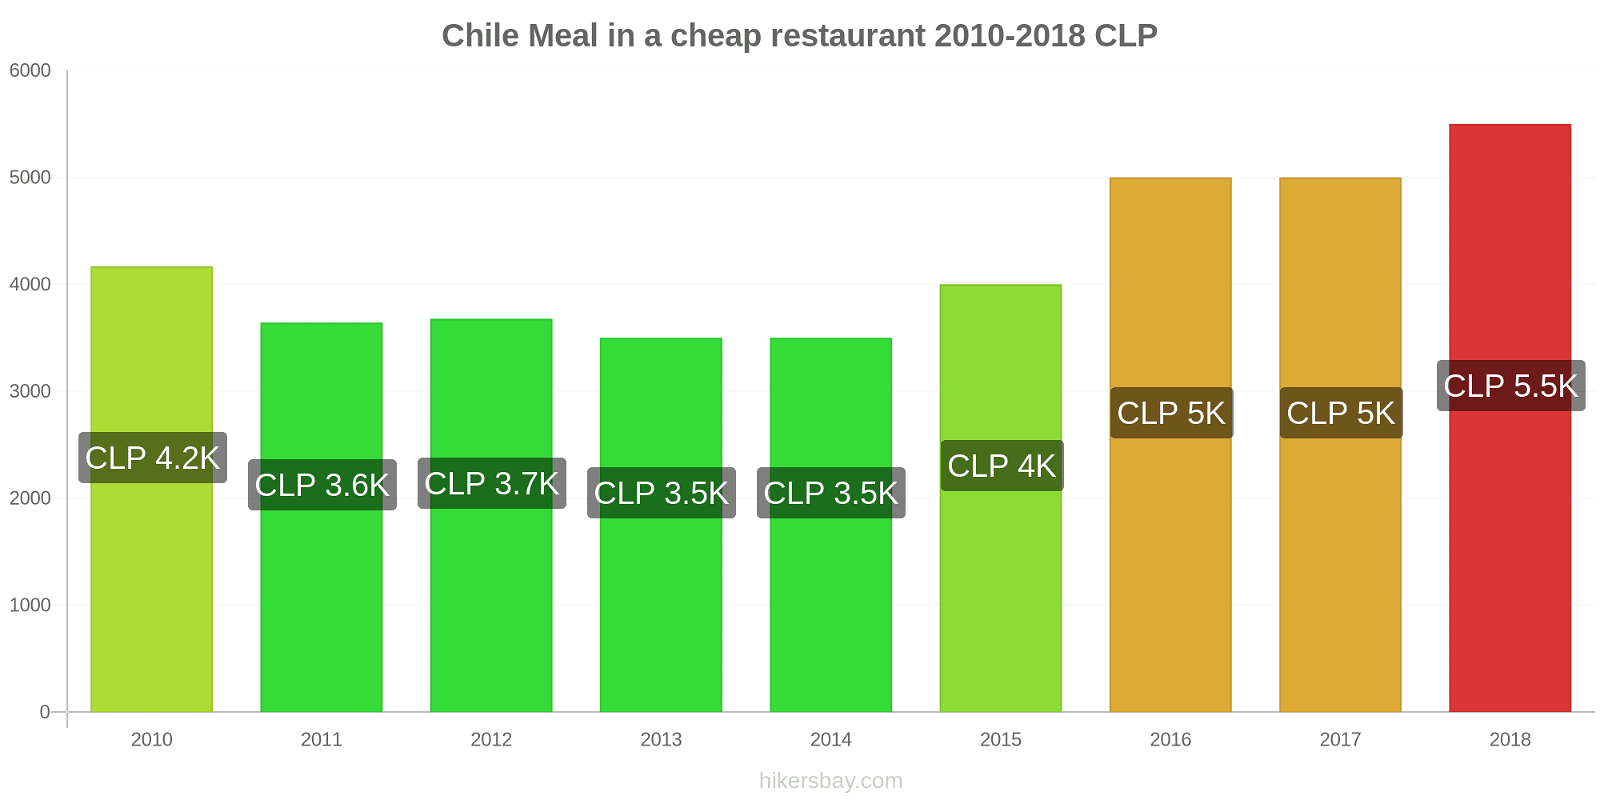 Chile price changes Meal in a cheap restaurant hikersbay.com